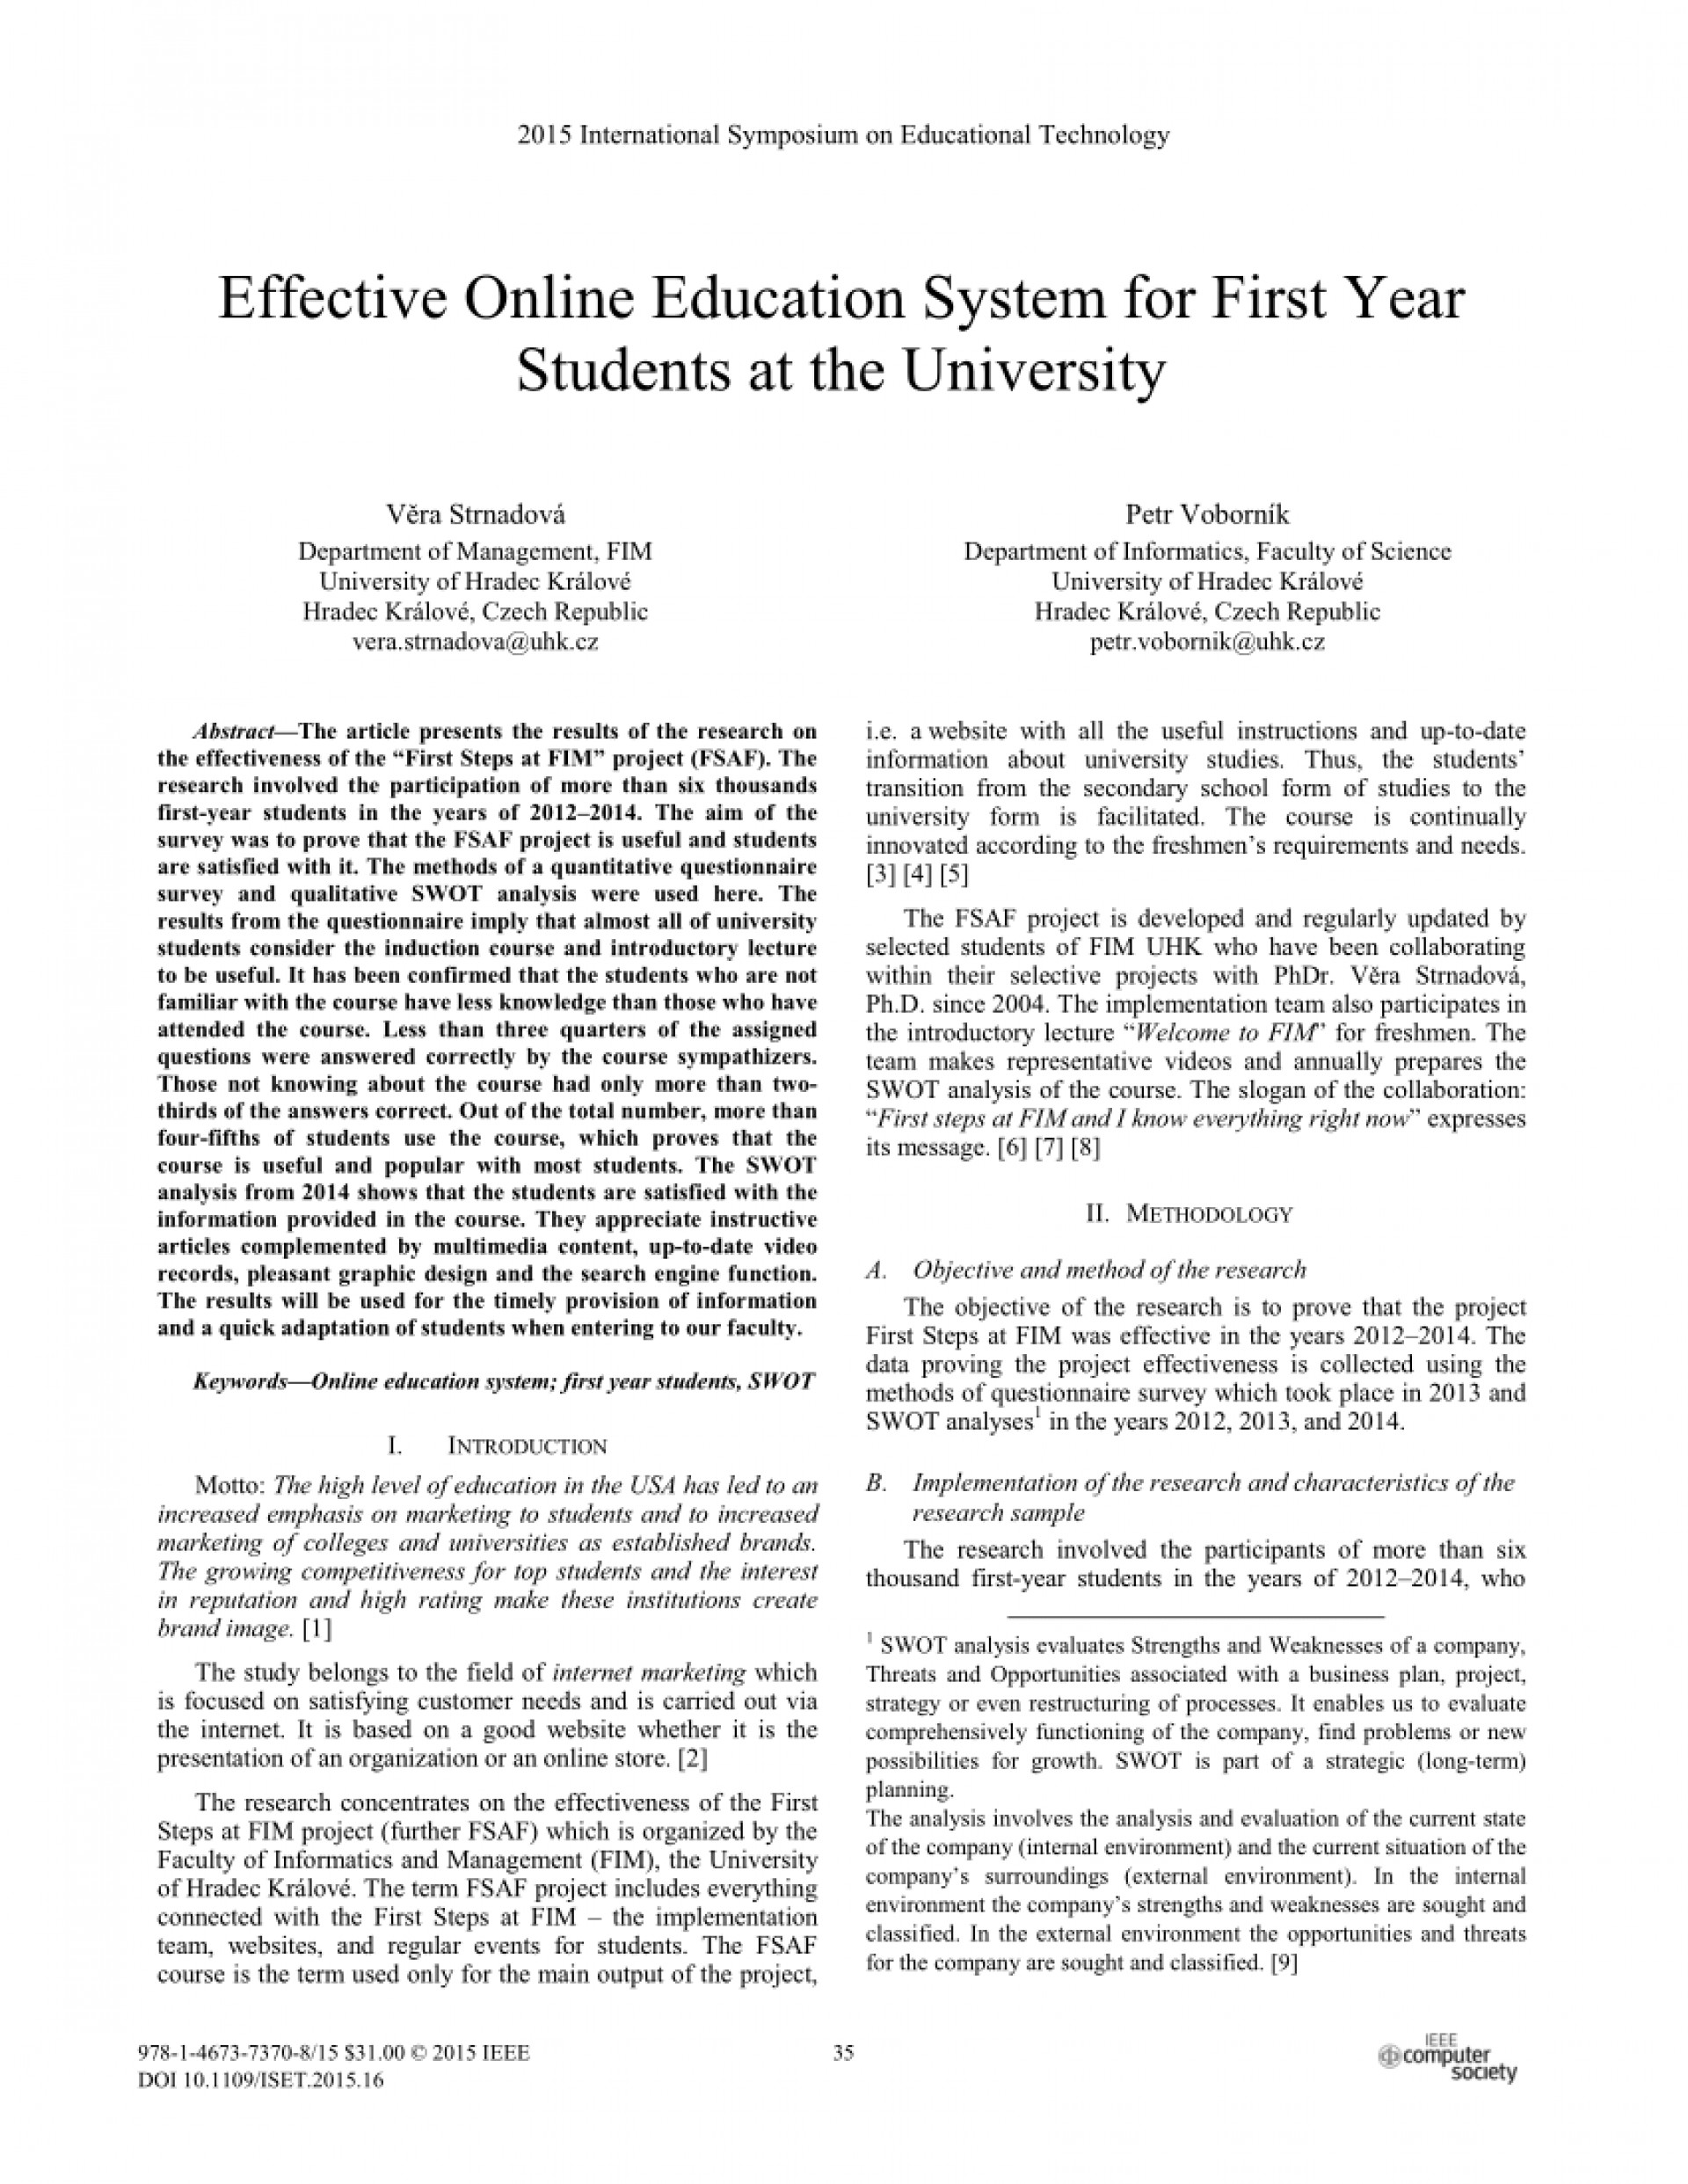 007 Effectiveness Of Online Education Research Paper Amazing 1920